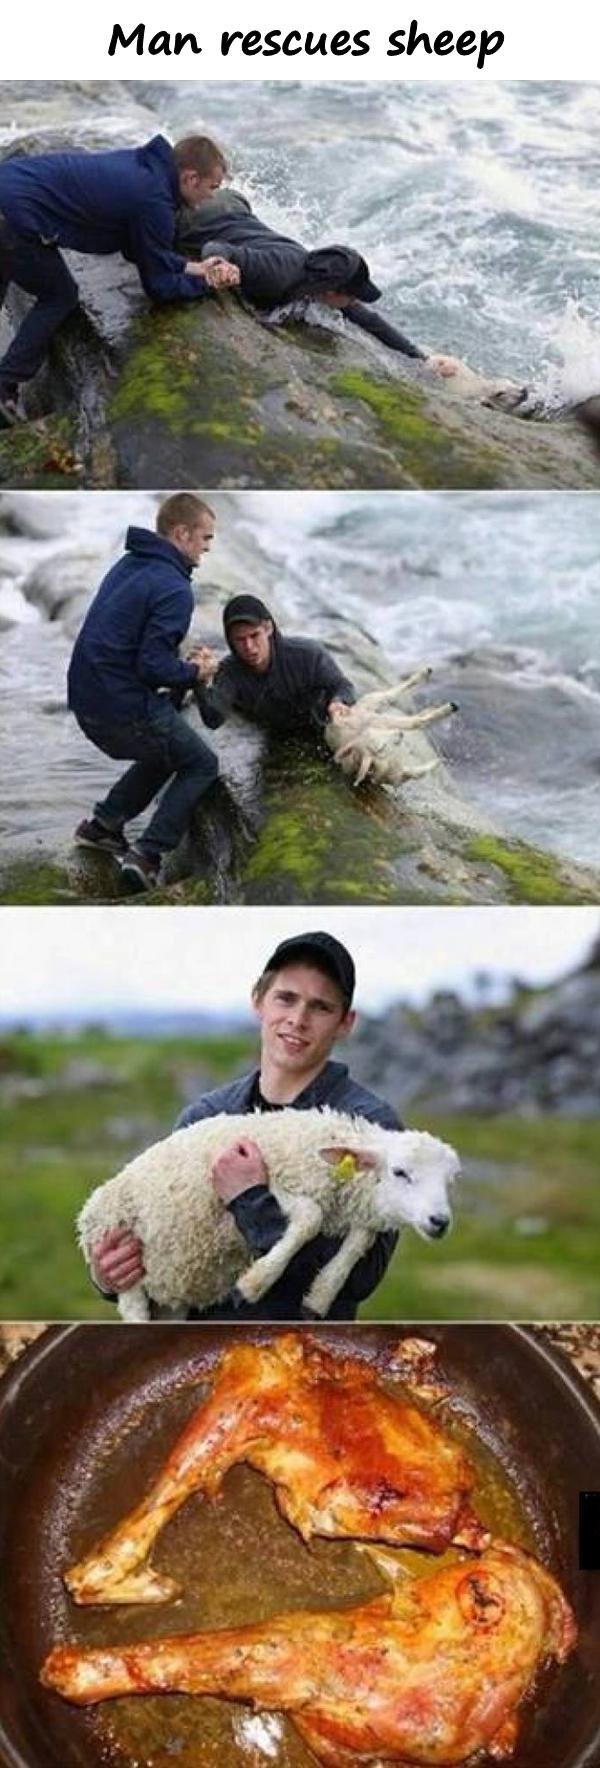 Man rescues sheep